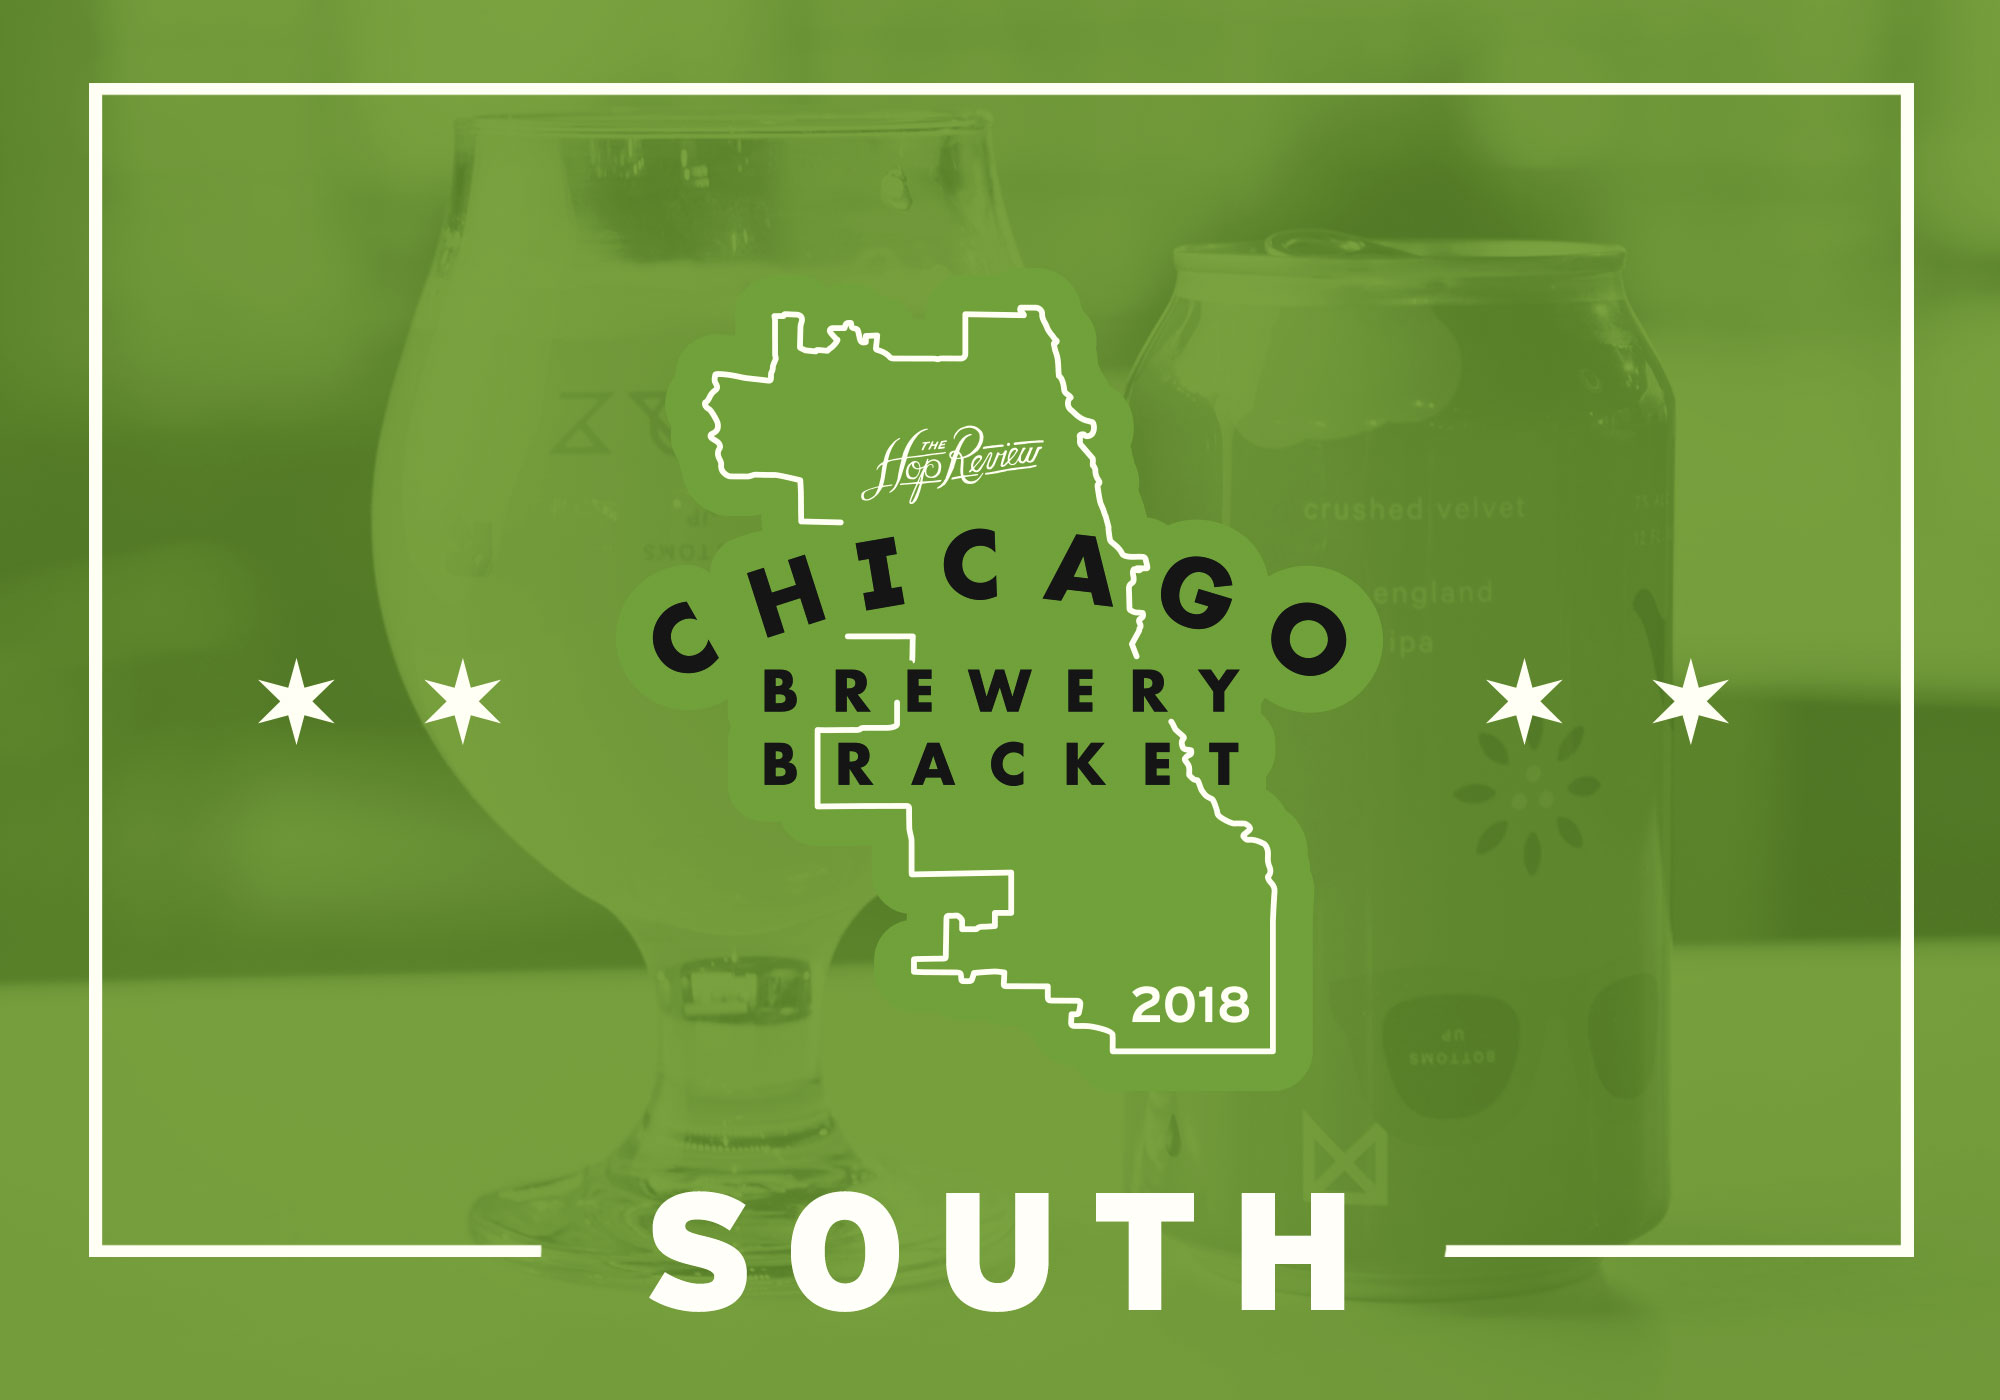 2018 Chicago Brewery Bracket: South – Rd. 2